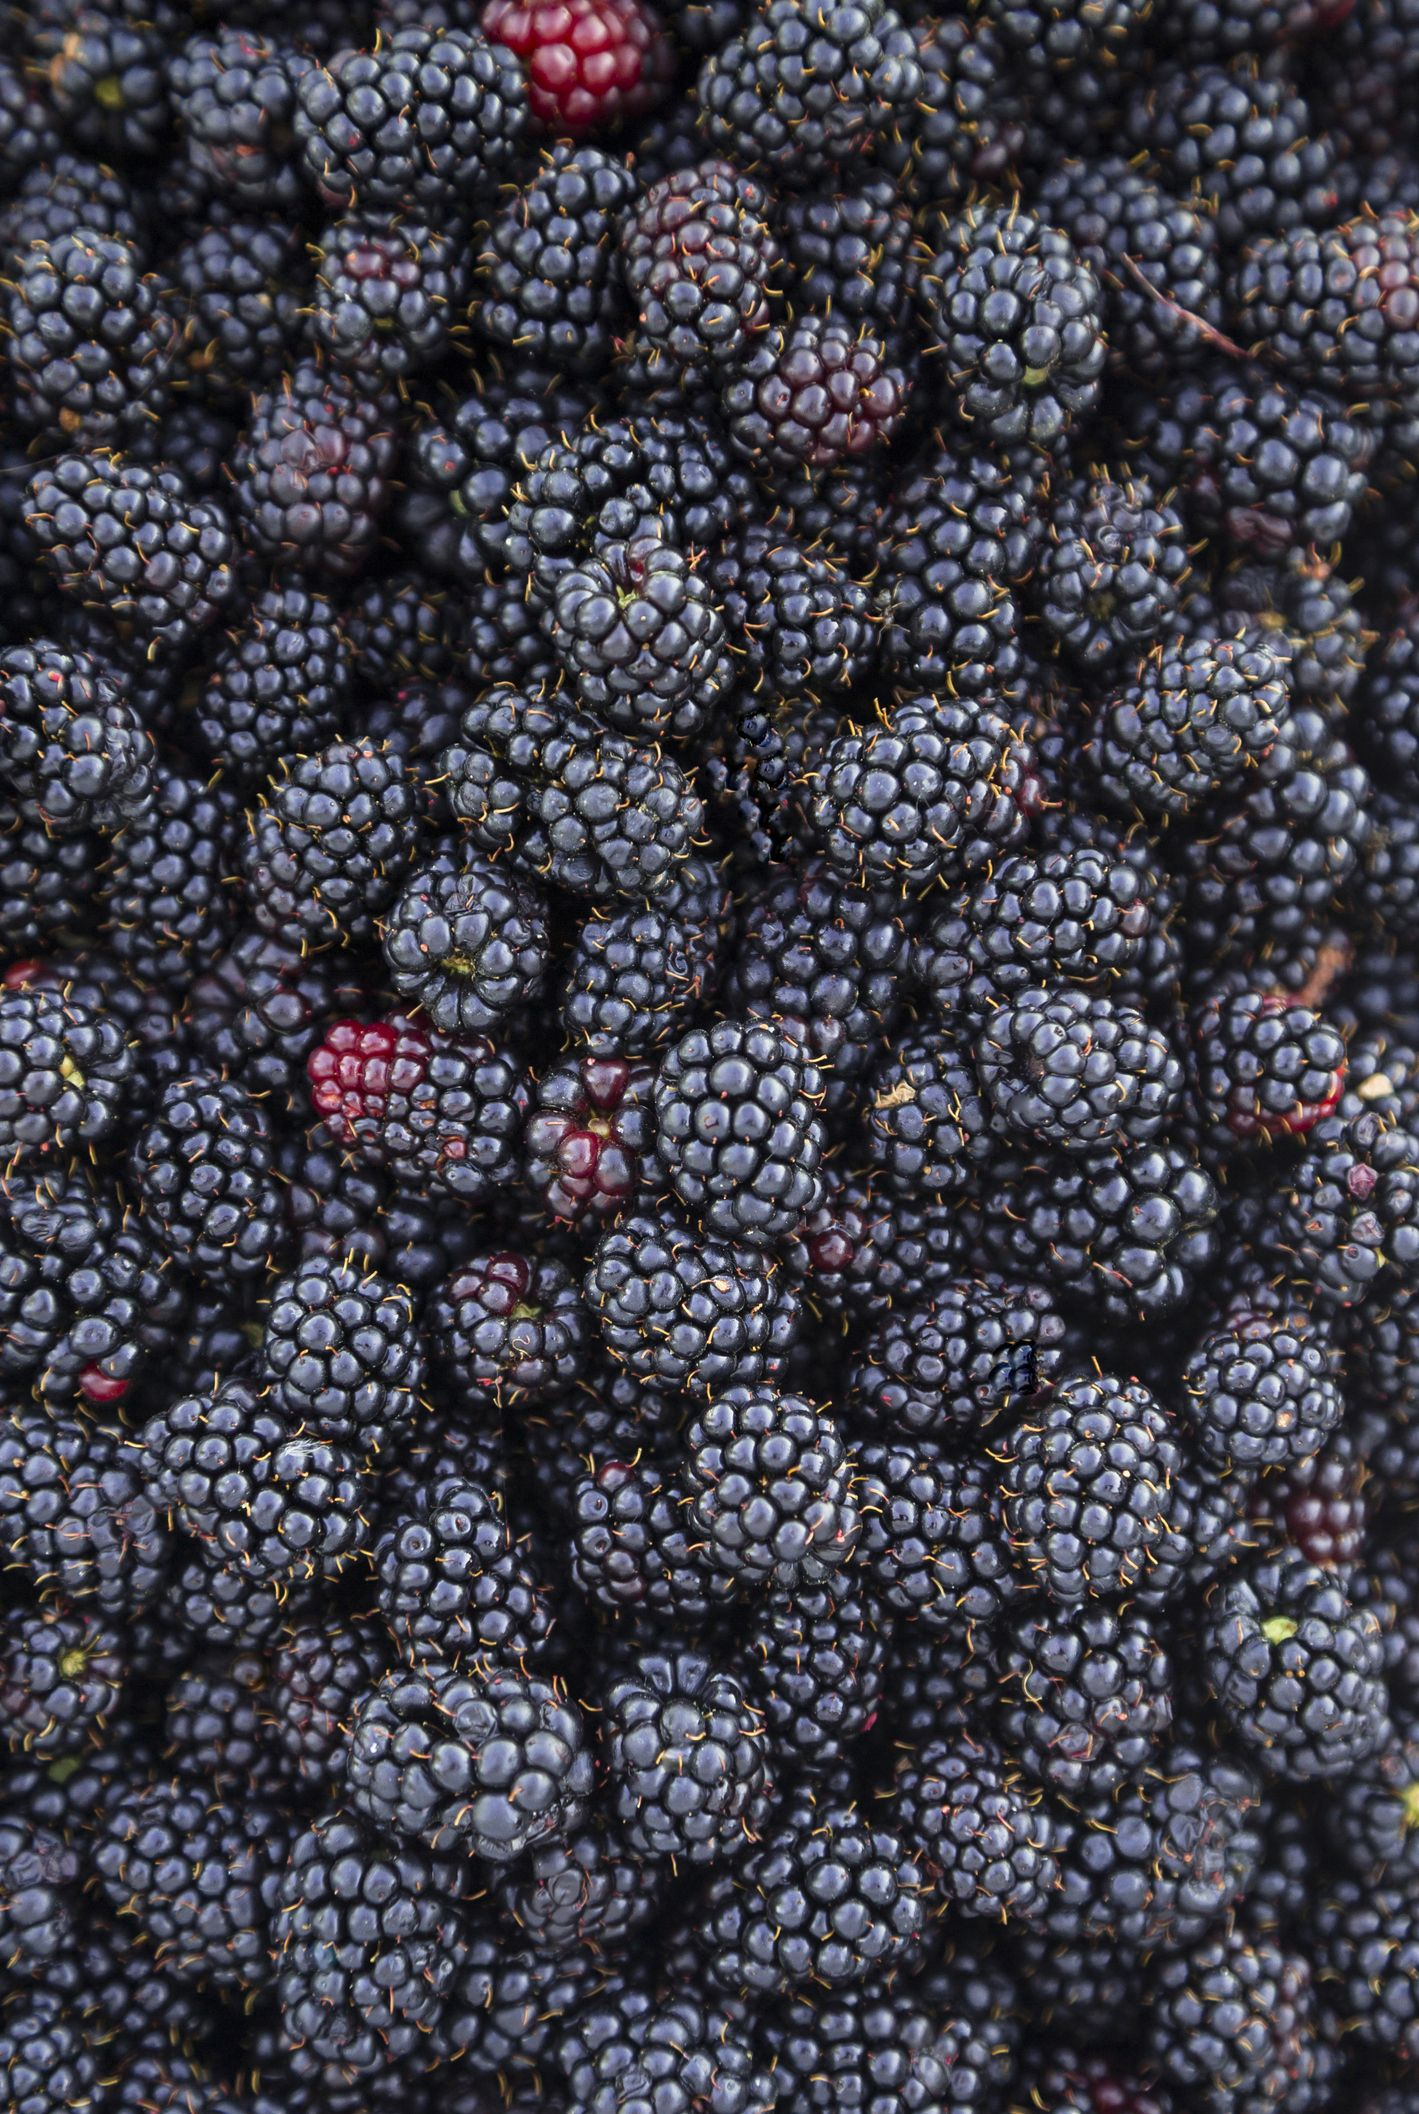 Six States Have Been Affected By A Blackberry-Related Hepatitis A Outbreak